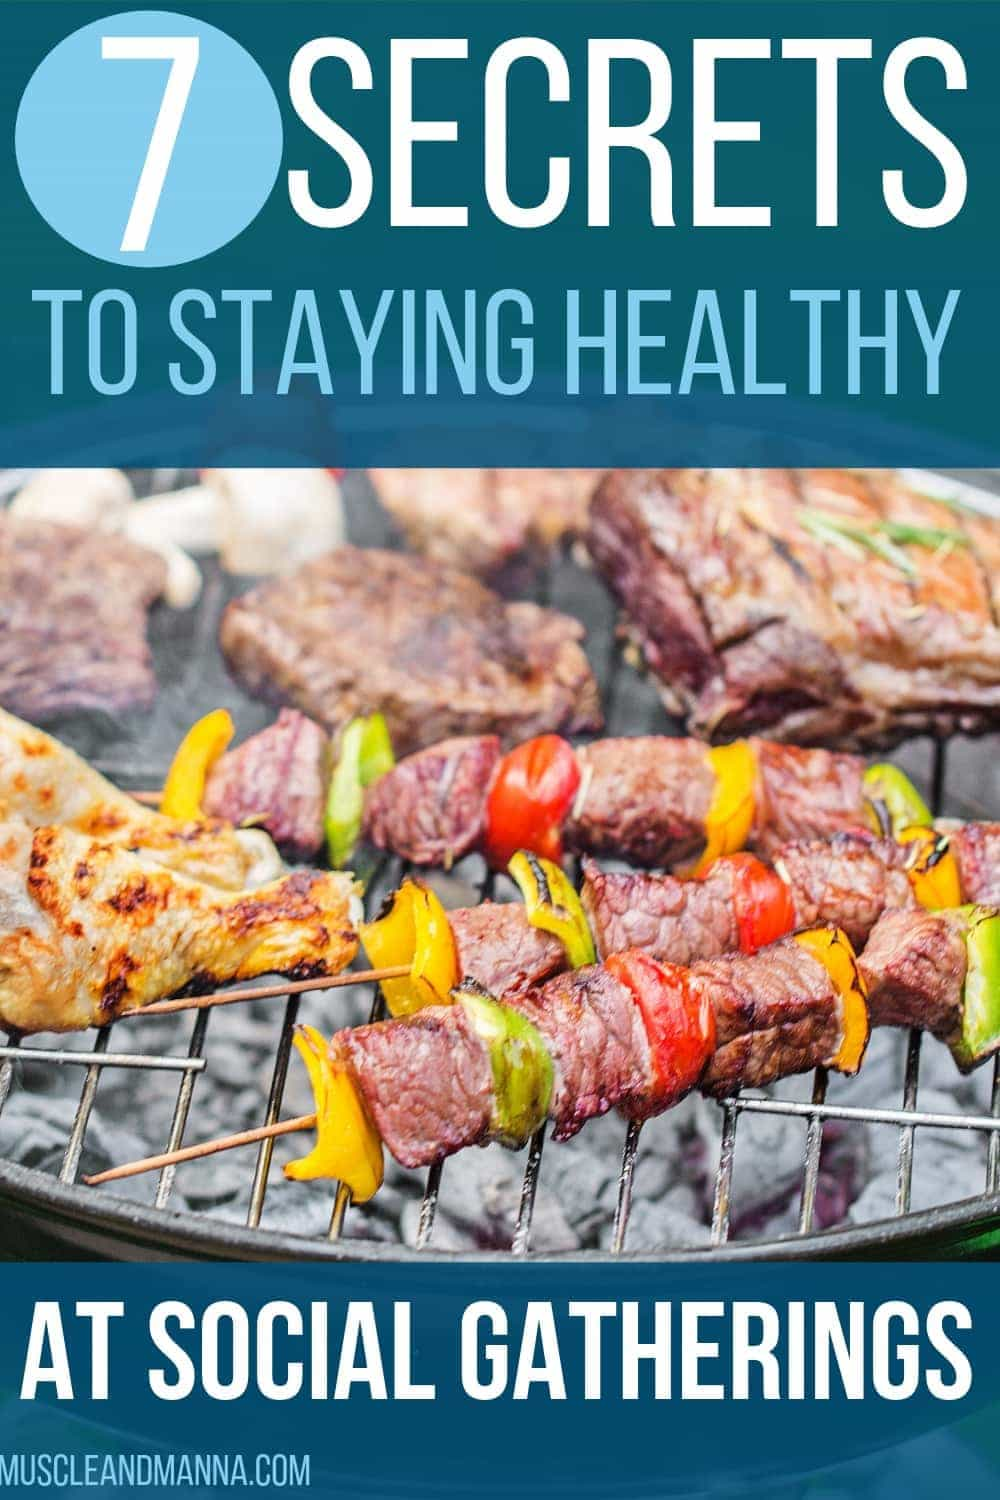 7 secrets to staying healthy at social gatherings